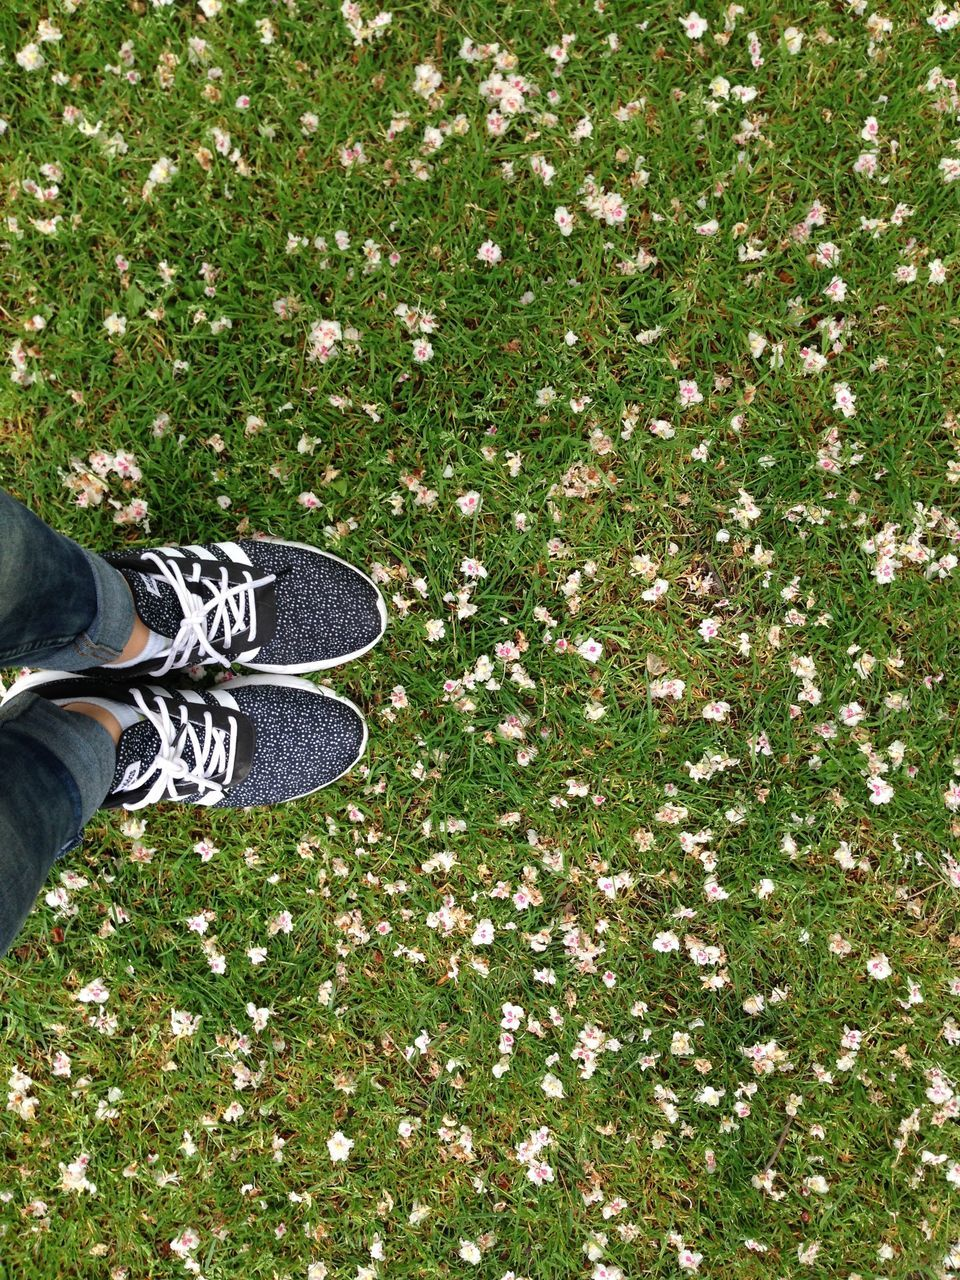 shoe, low section, human leg, one person, human body part, grass, canvas shoe, standing, human foot, real people, high angle view, day, outdoors, directly above, lifestyles, nature, men, people